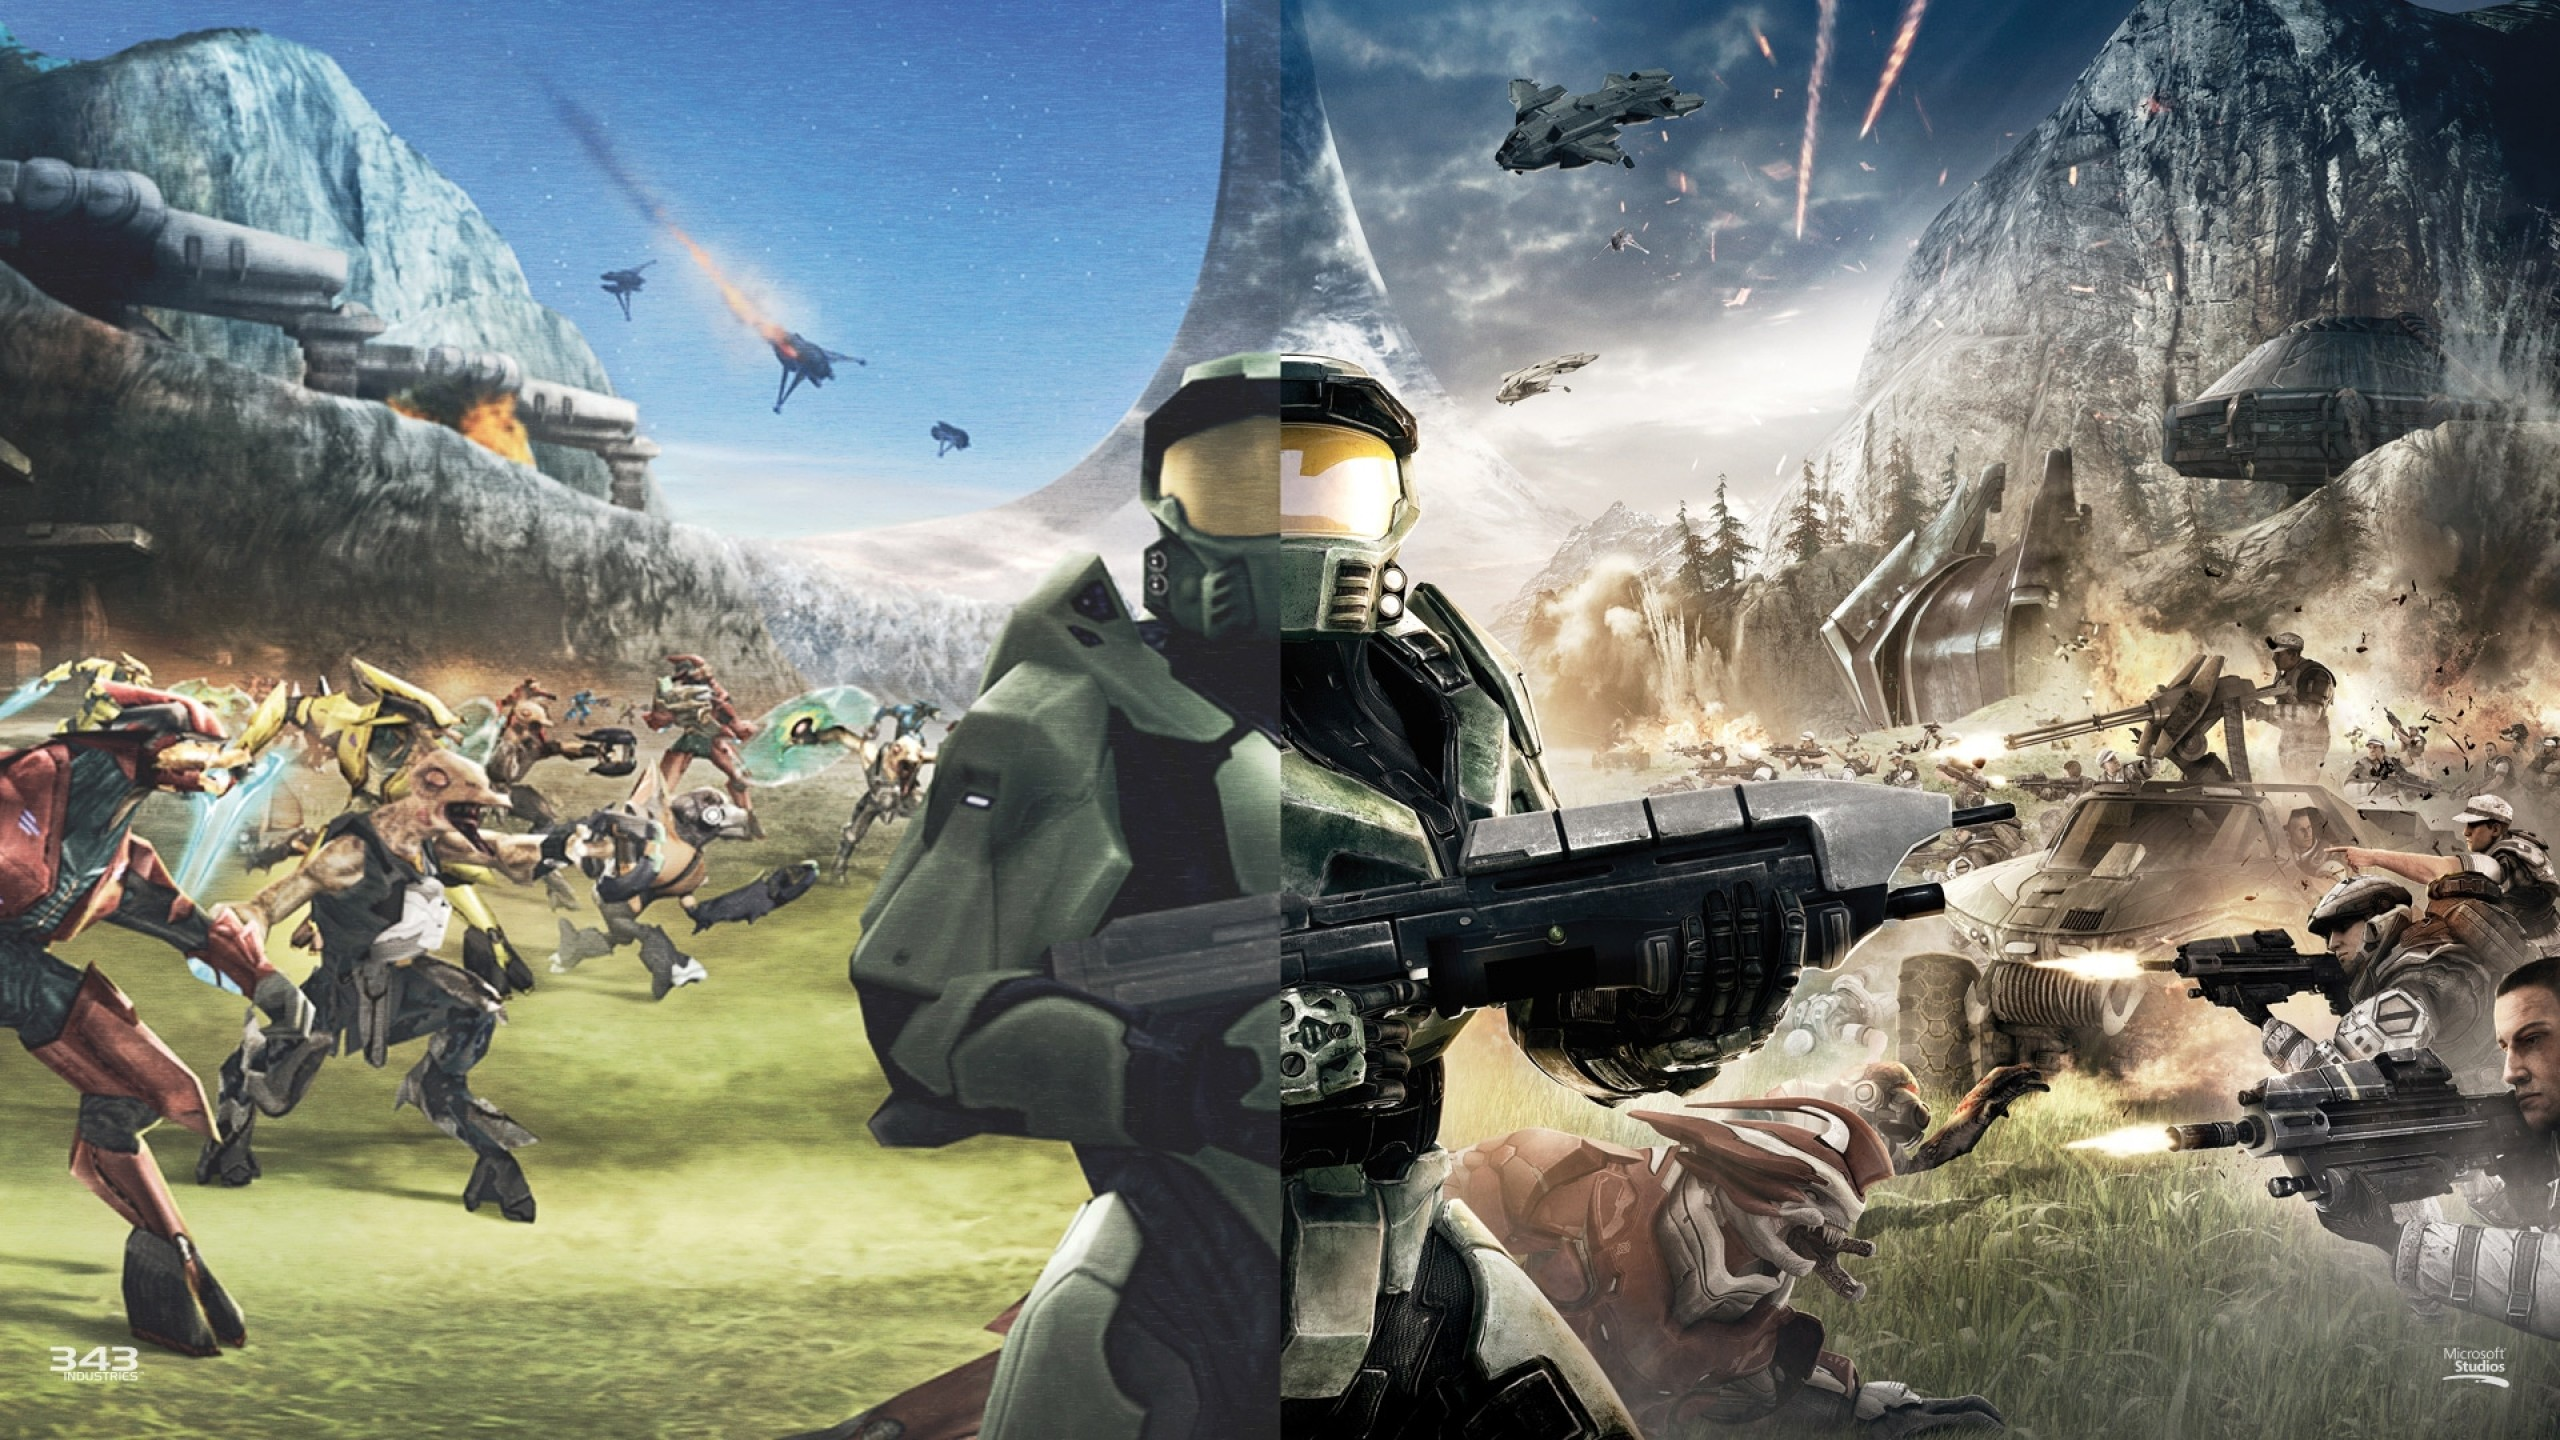 2560x1440 Halo CE Anniversary Comparison